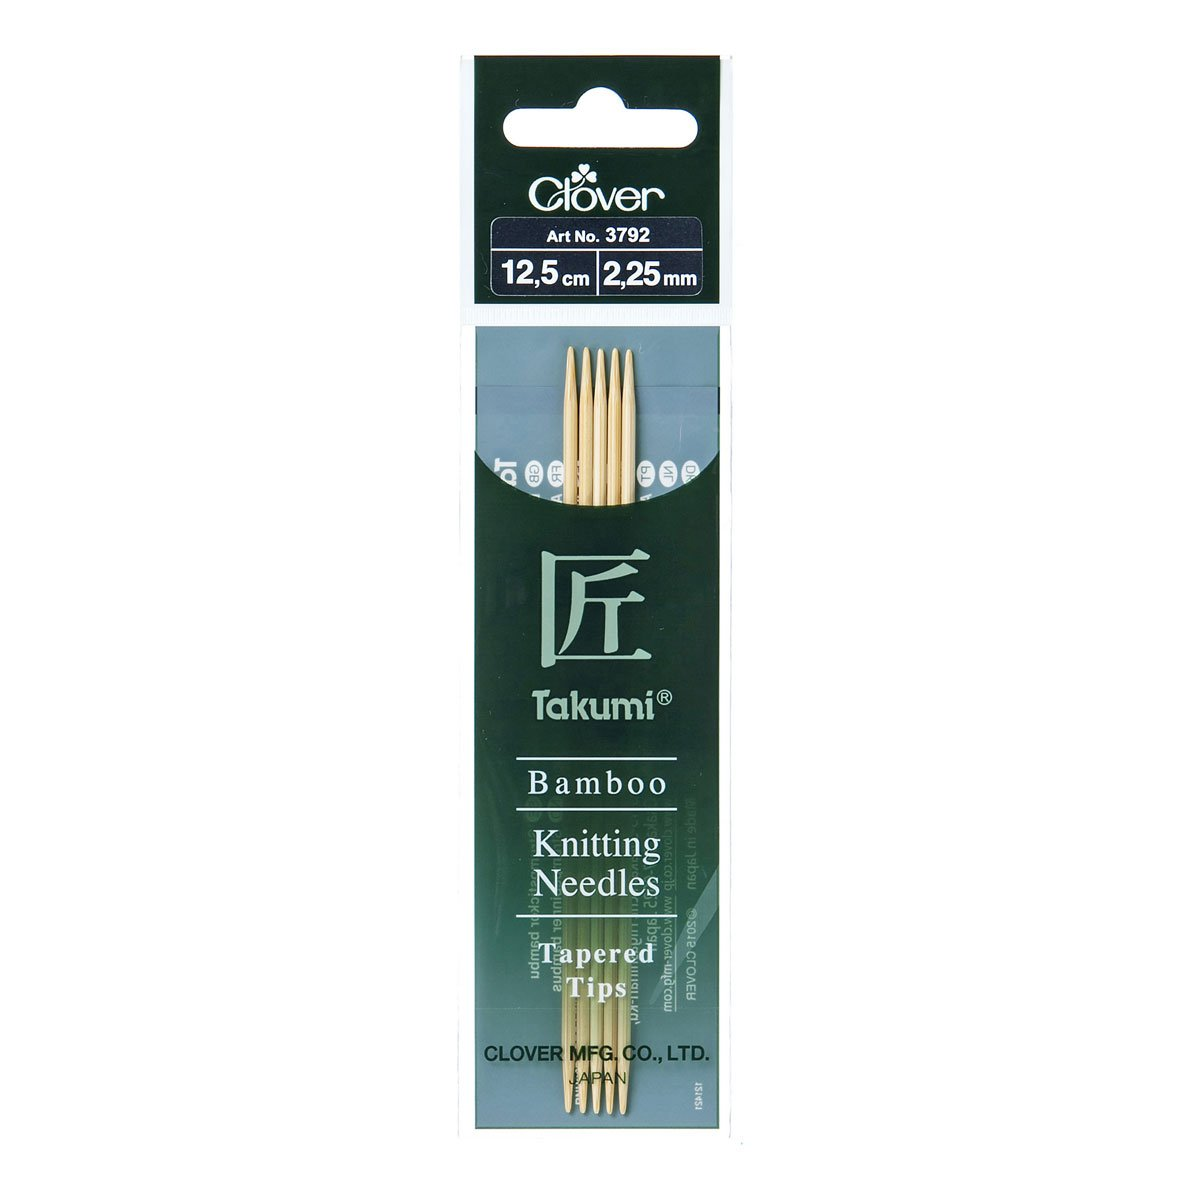 Clover Takumi Bamboo: Knitting Pins: Double Ended: Sets Five: 12.5cm x 2.25mm (3)